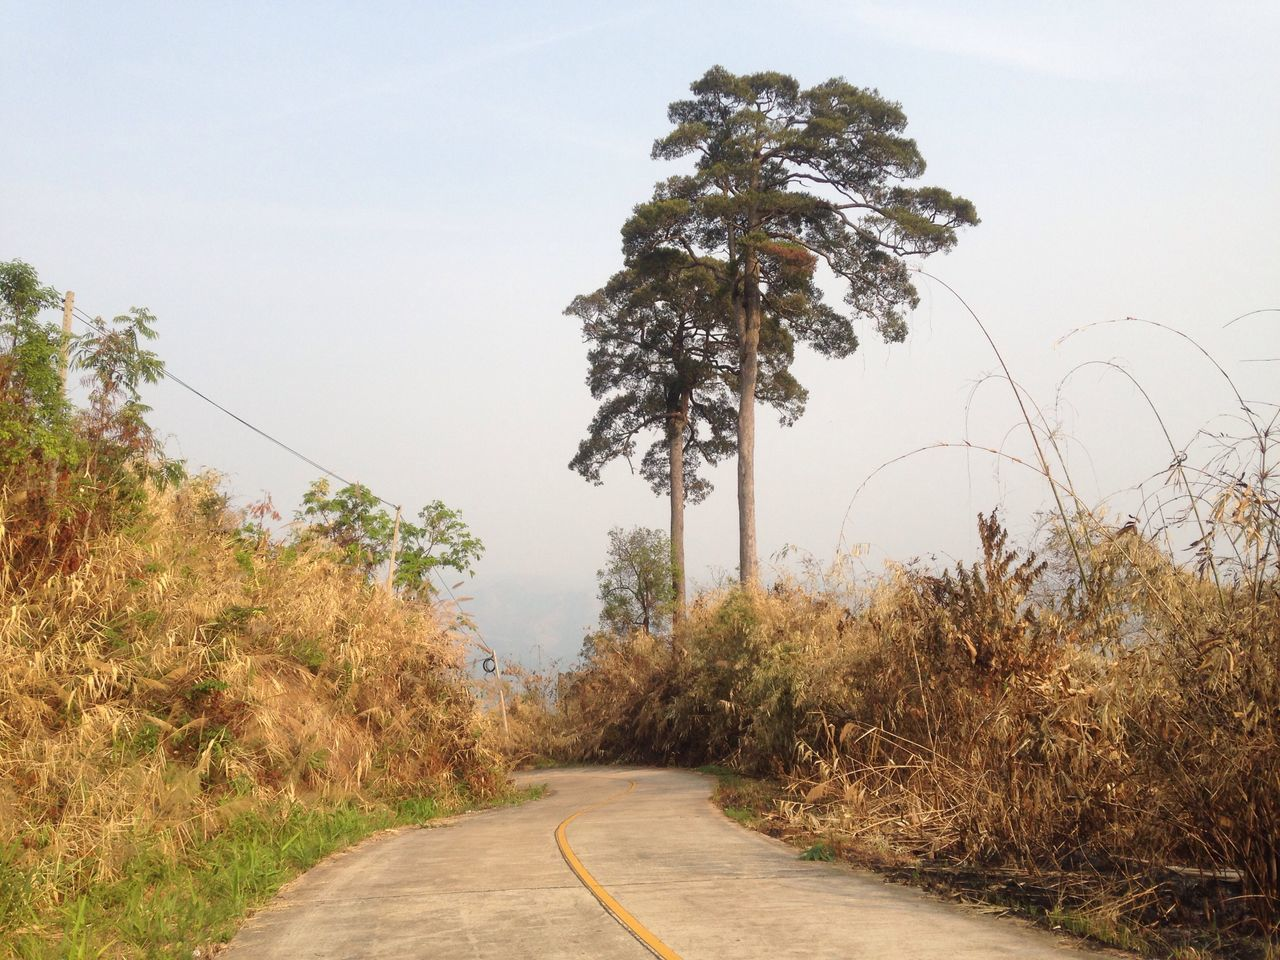 tree, growth, road, the way forward, nature, no people, plant, clear sky, outdoors, landscape, day, beauty in nature, sky